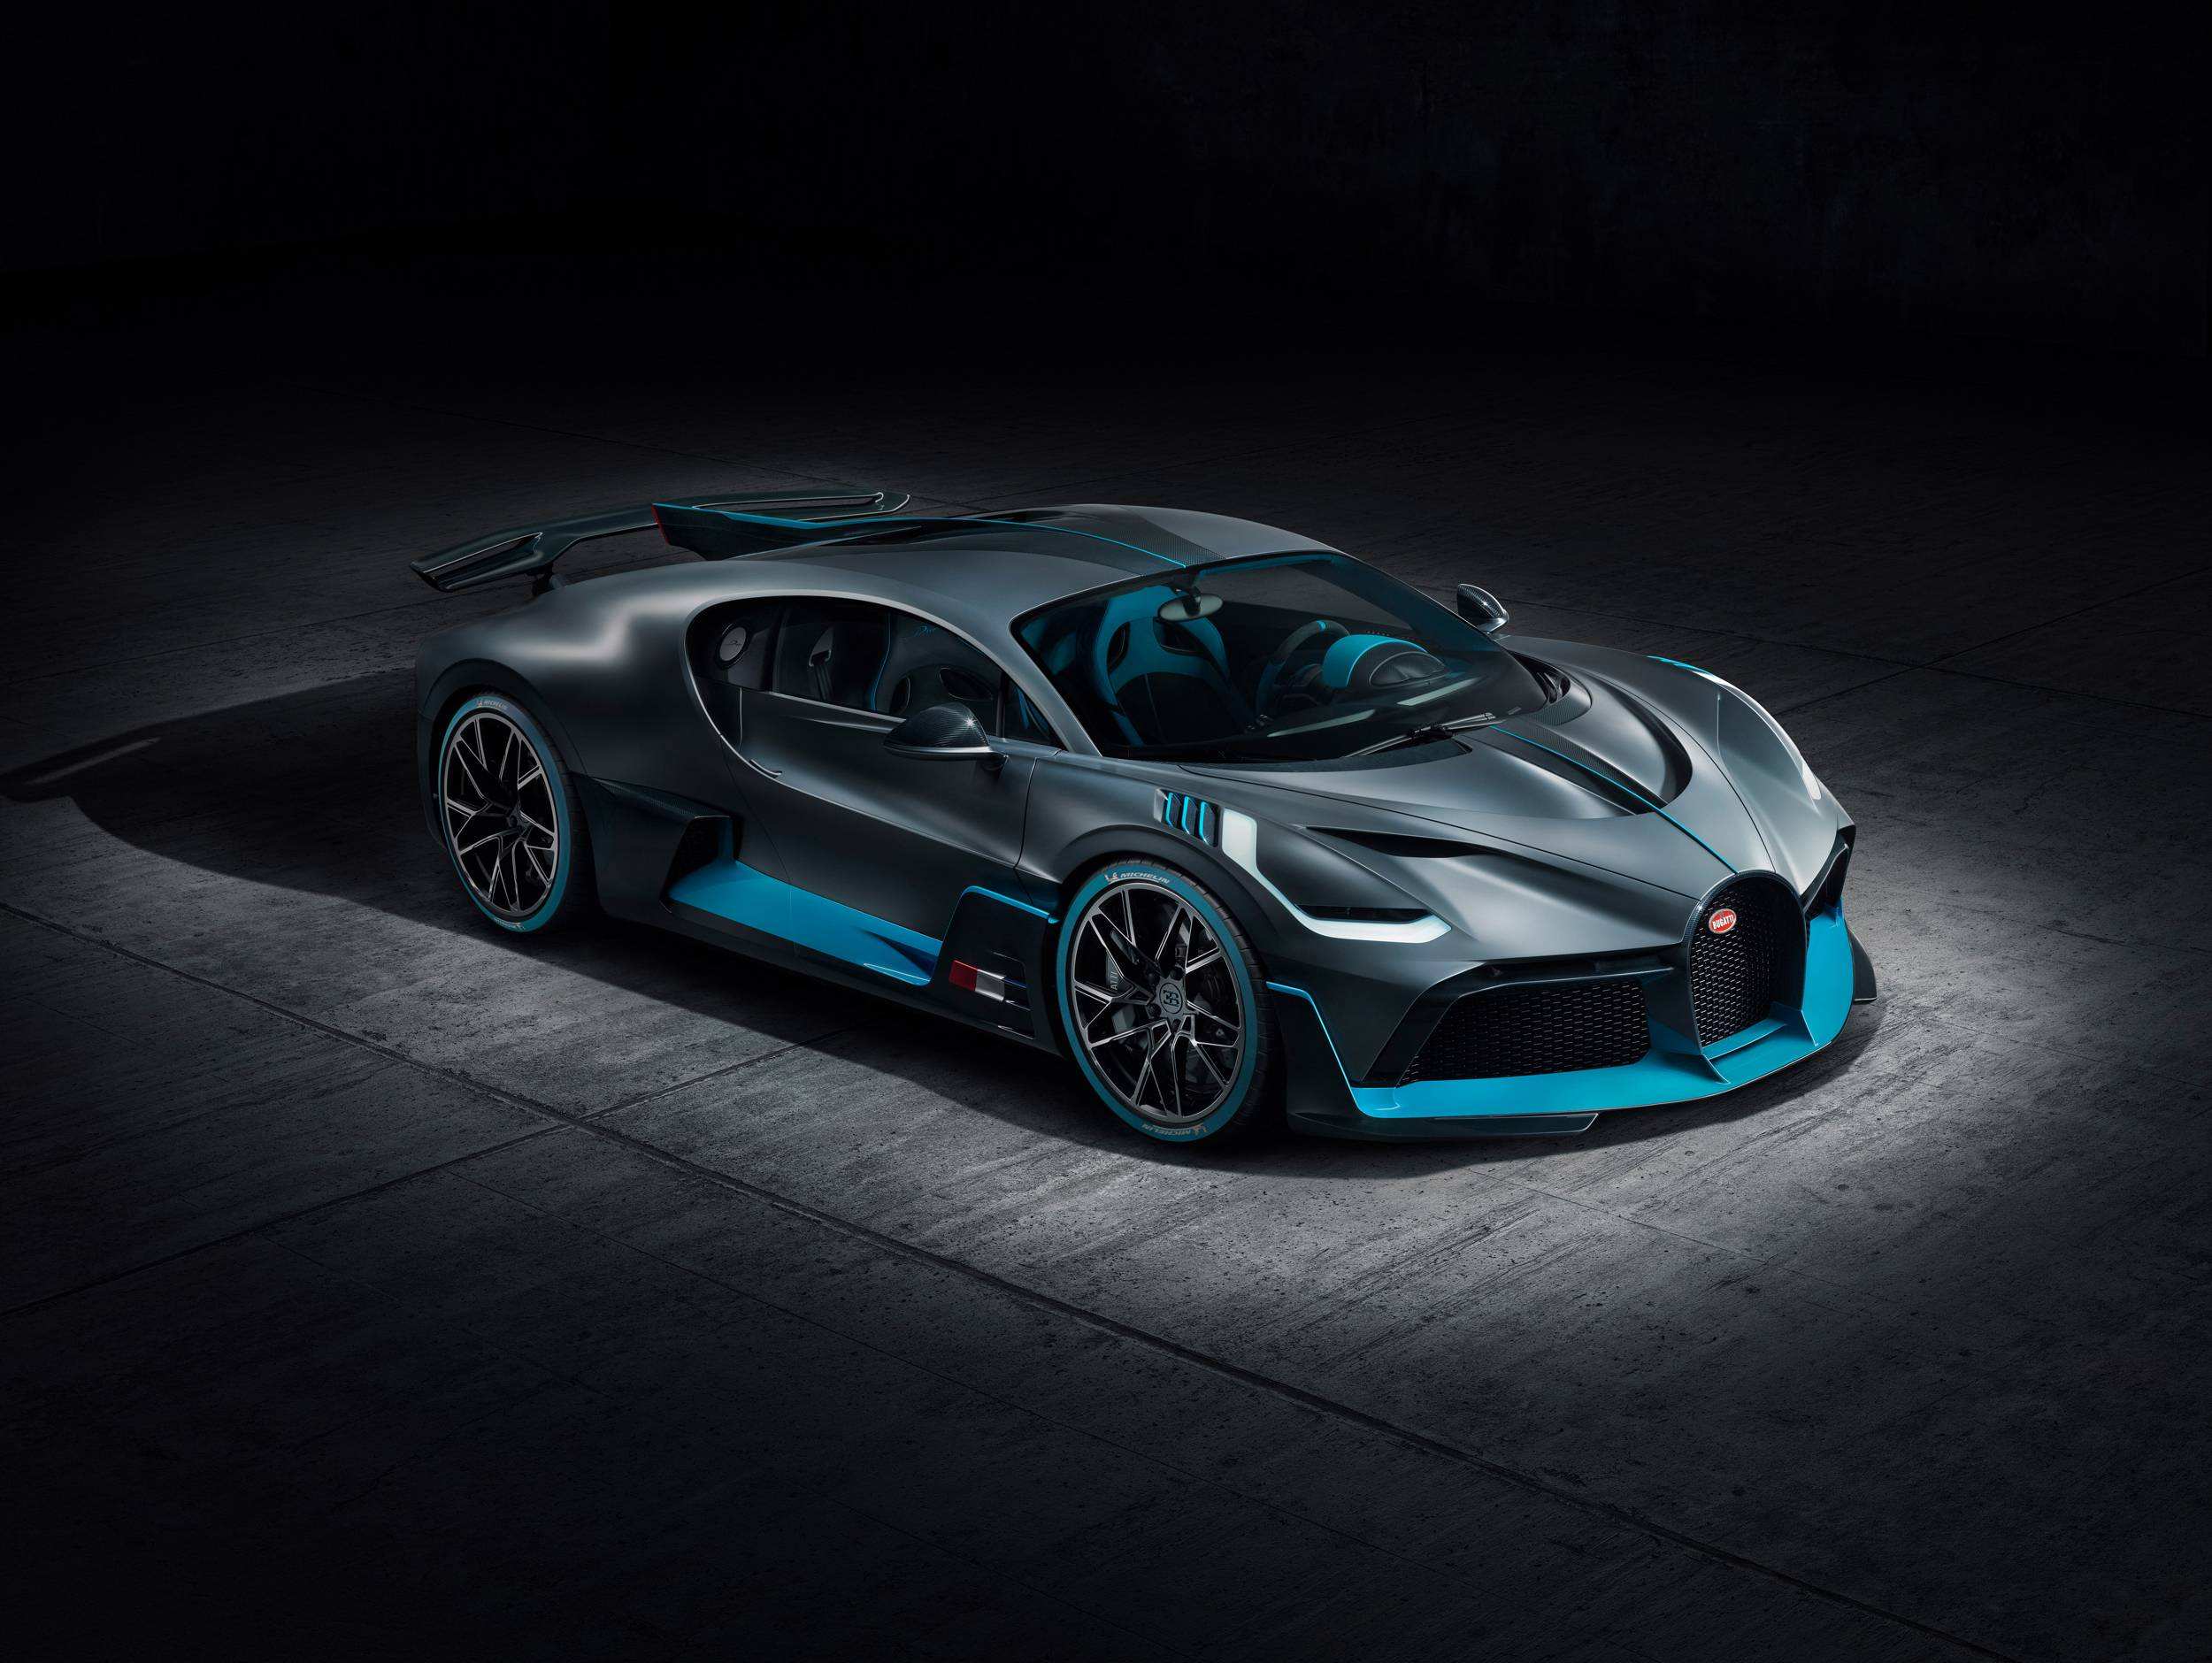 Bugatti made its Divo supercar faster by slowing it down